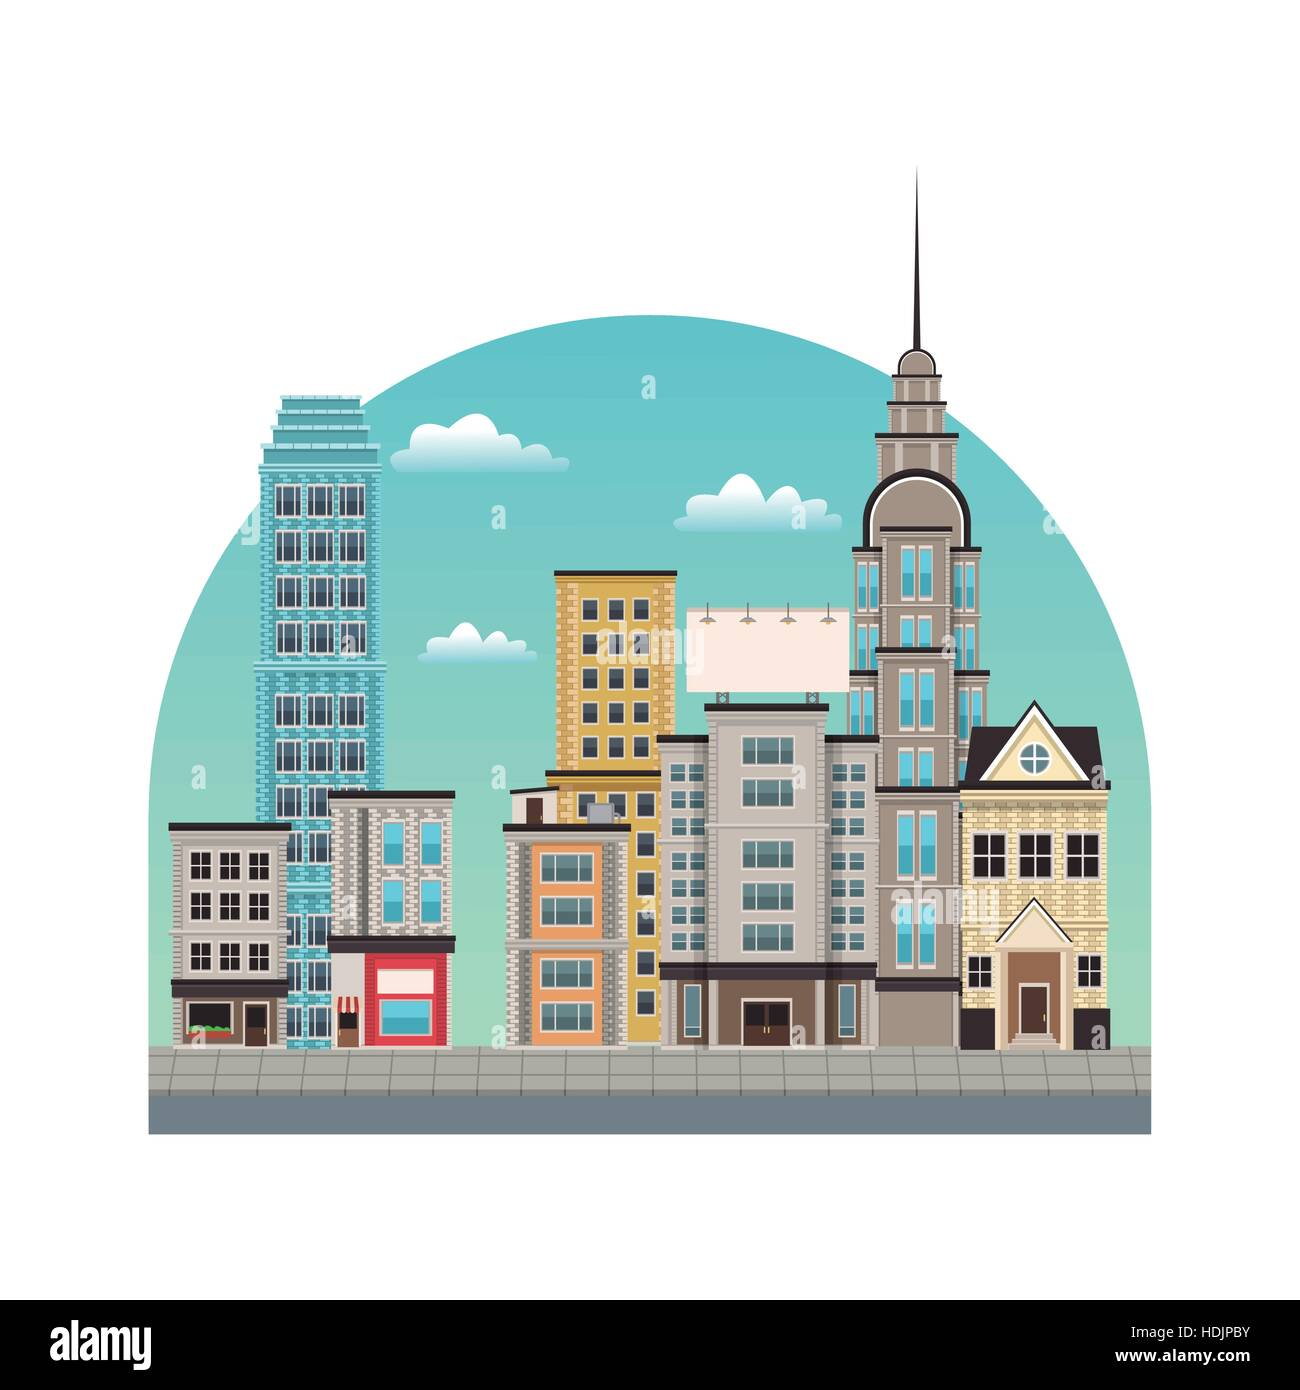 city downtown buildings style - Stock Image